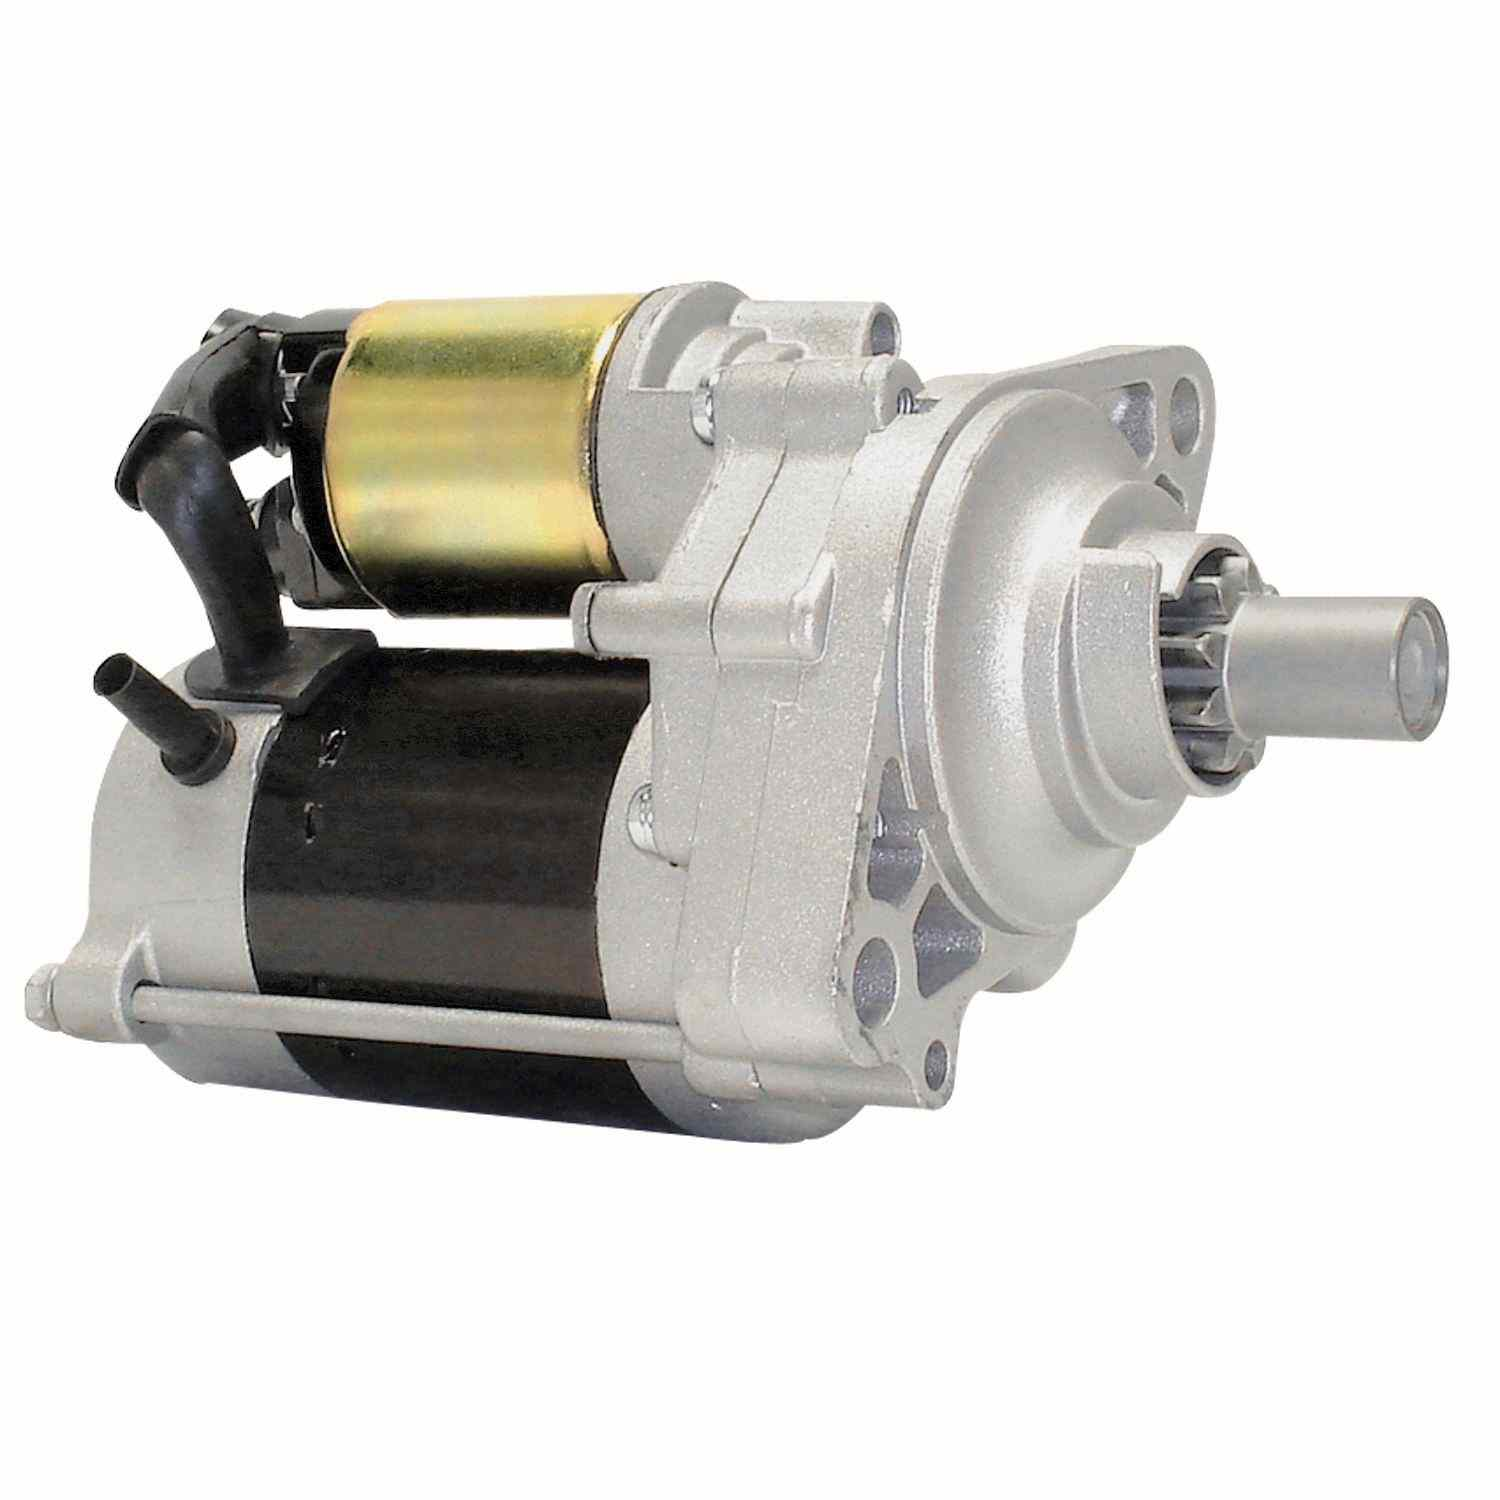 ACDELCO GOLD/PROFESSIONAL - Reman Starter Motor - DCC 336-1076A